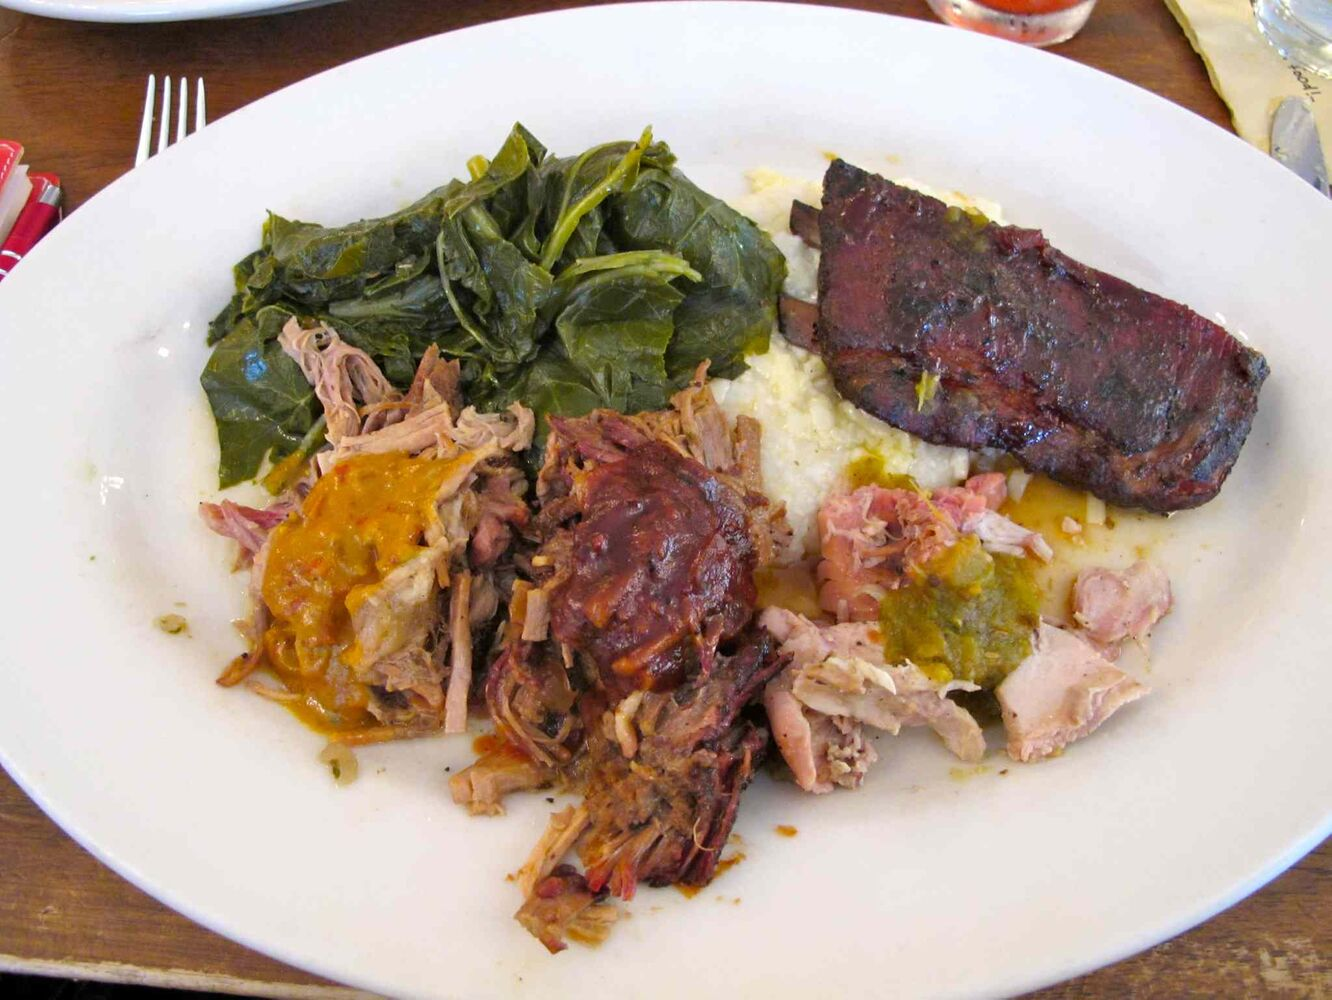 Barbecue tasting menu at Zingerman's Roadhouse. (Jill Wilson / Winnipeg Free Press)